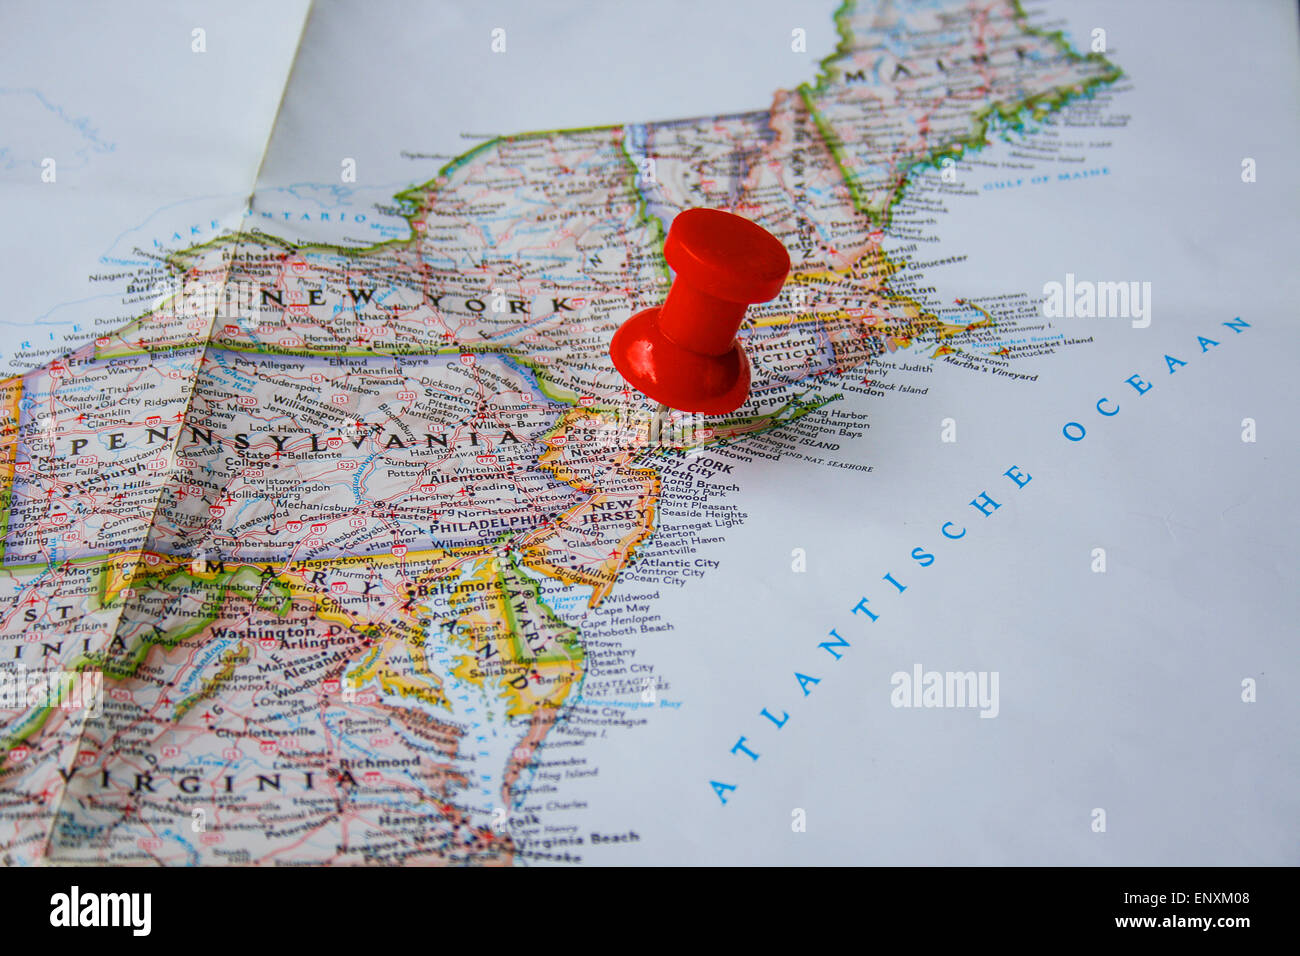 Red Pin On Map Of USA Pointing At New York City New York Stock - New york city on map of usa